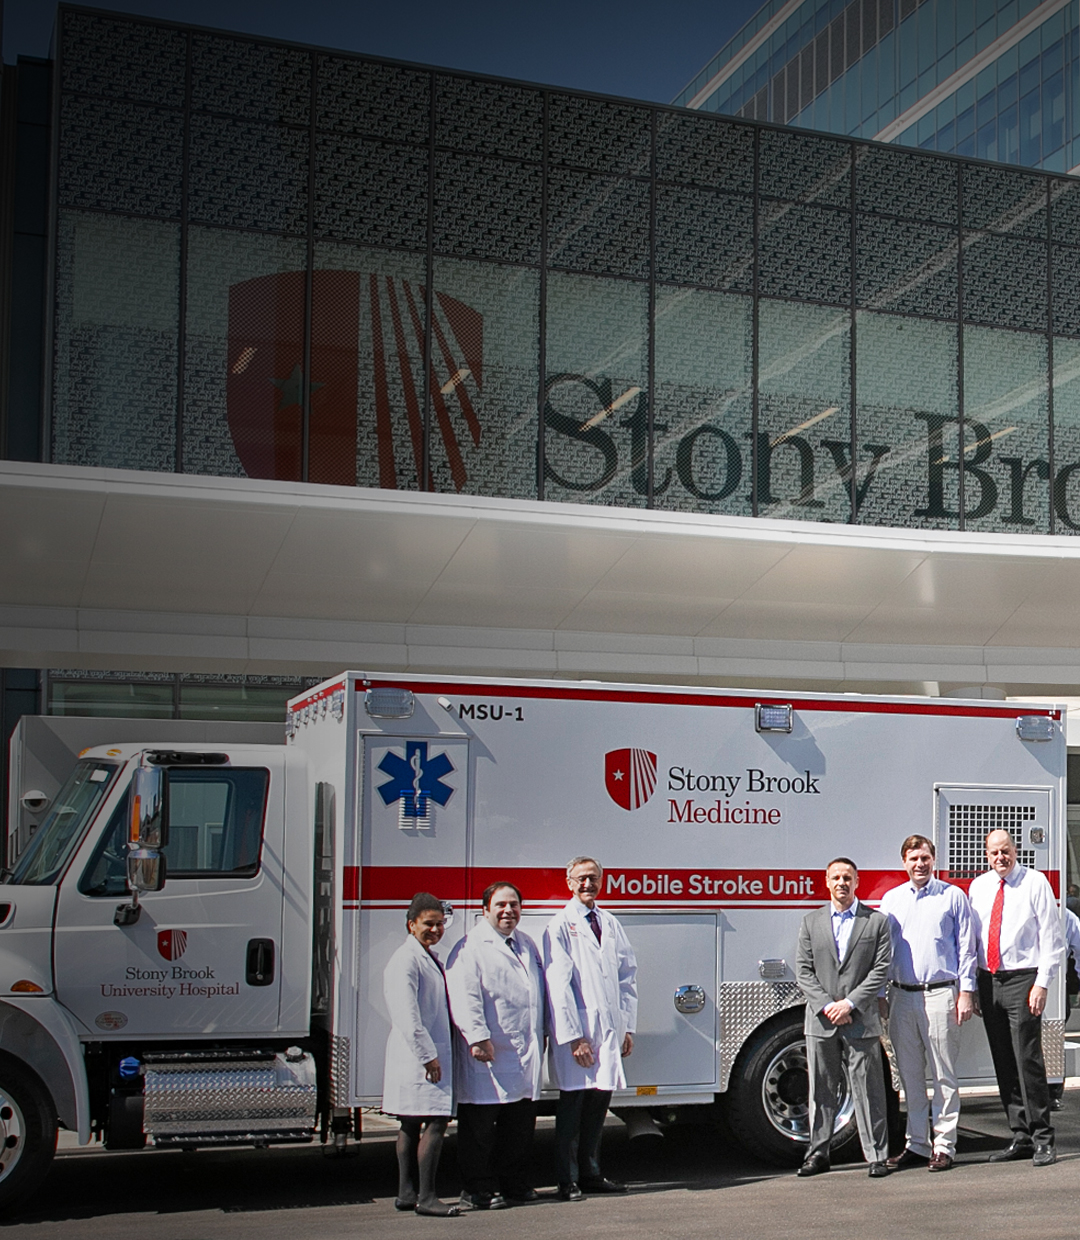 LONG ISLAND'S FIRST MOBILE STROKE UNITS